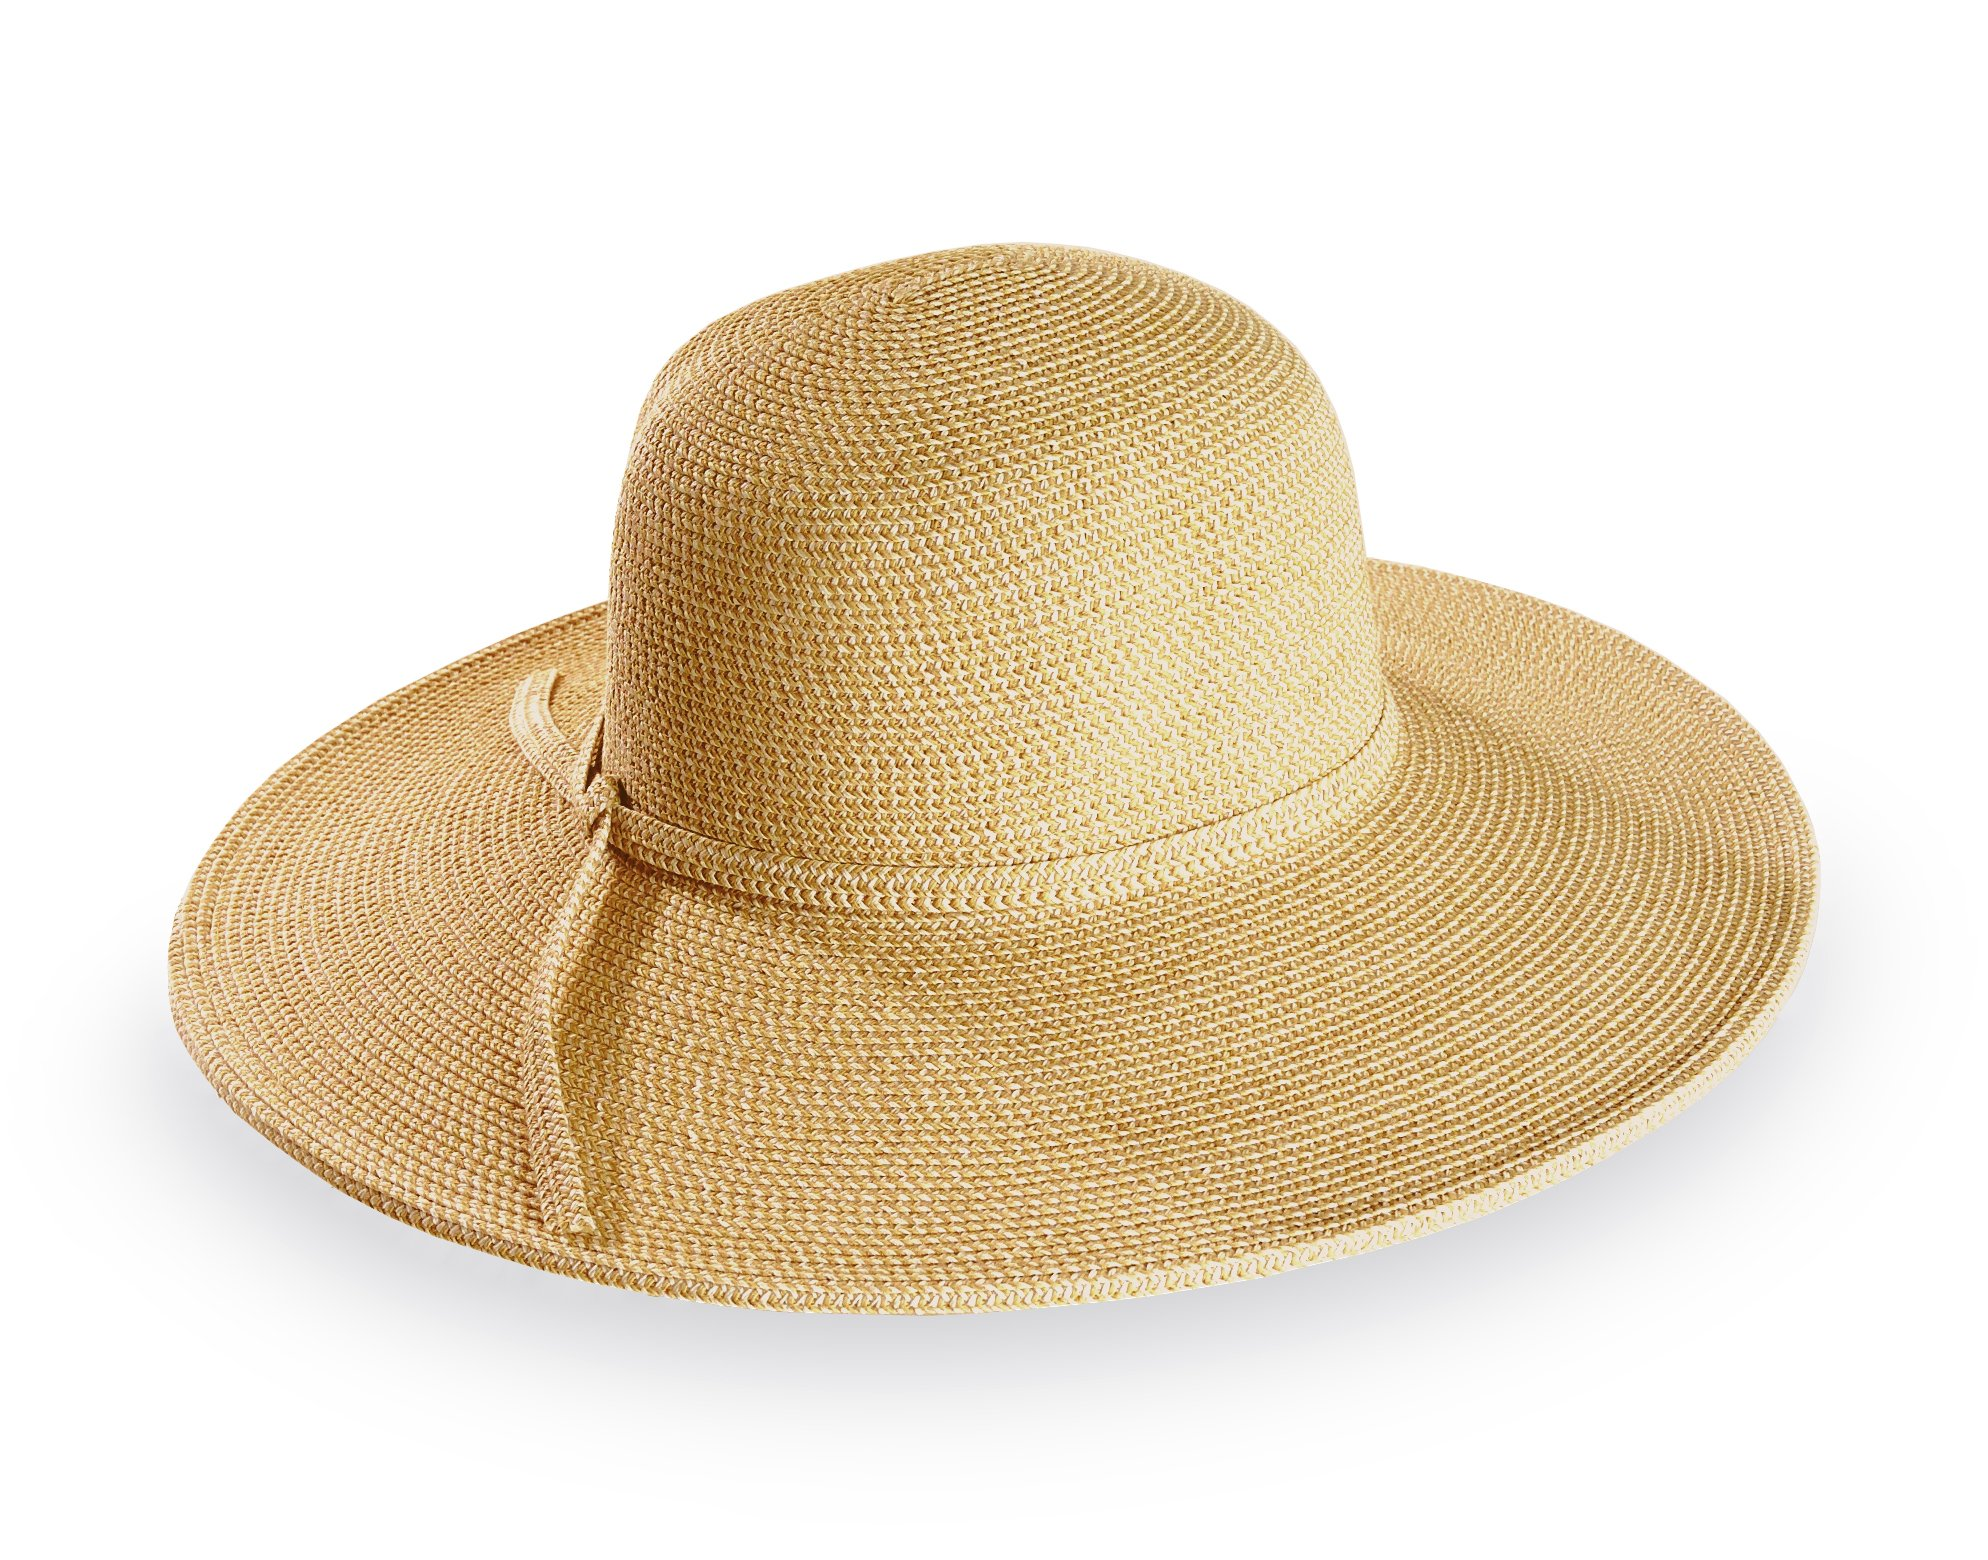 Sunday Afternoons Women's Riviera Hat, Natural, One Size